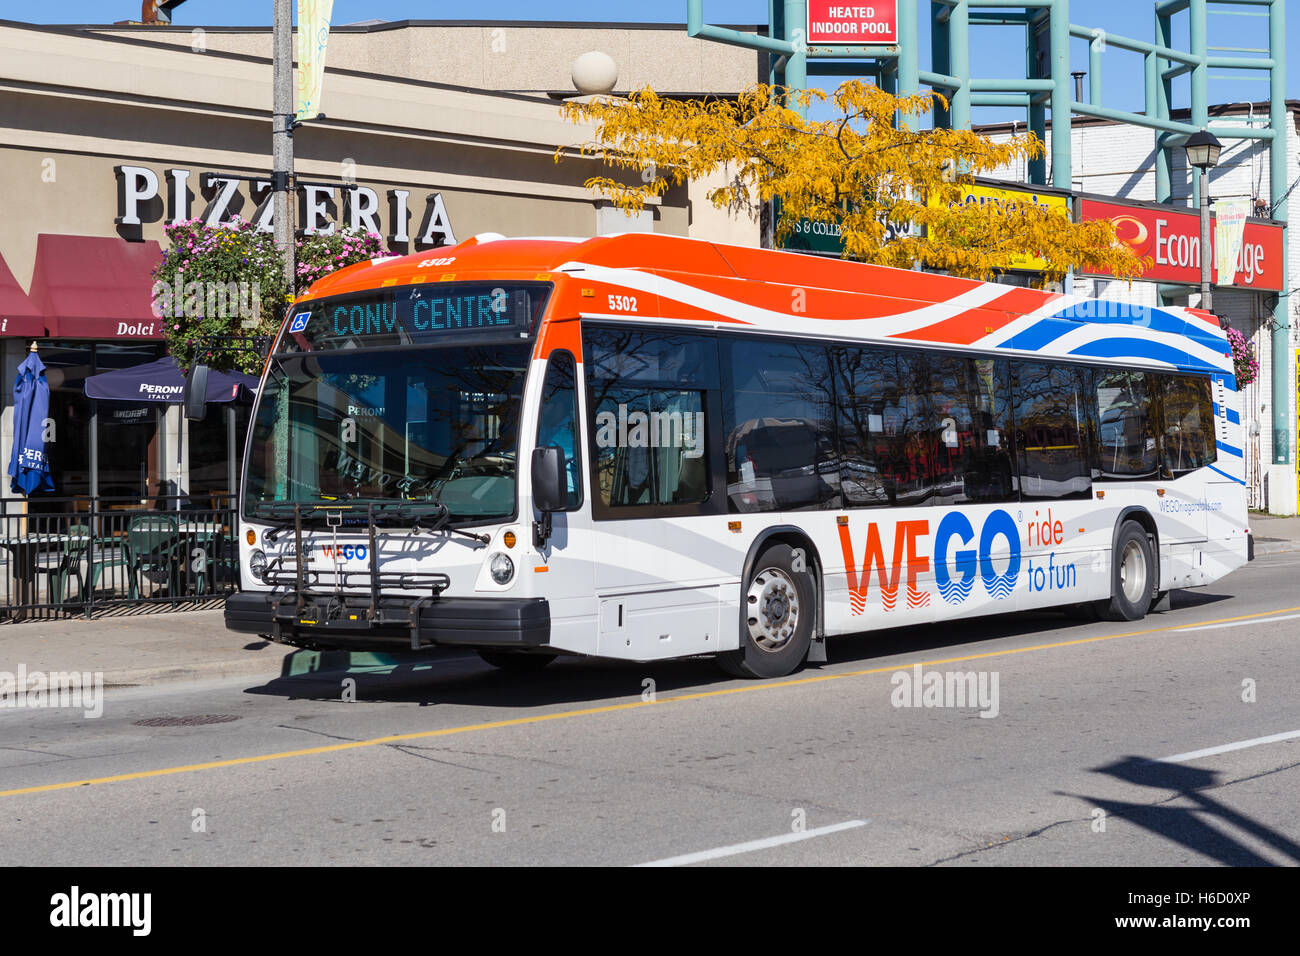 A WEGO bus heads down Victoria Avenue on its route to the Convention Center in Niagara Falls, Ontario, Canada. - Stock Image